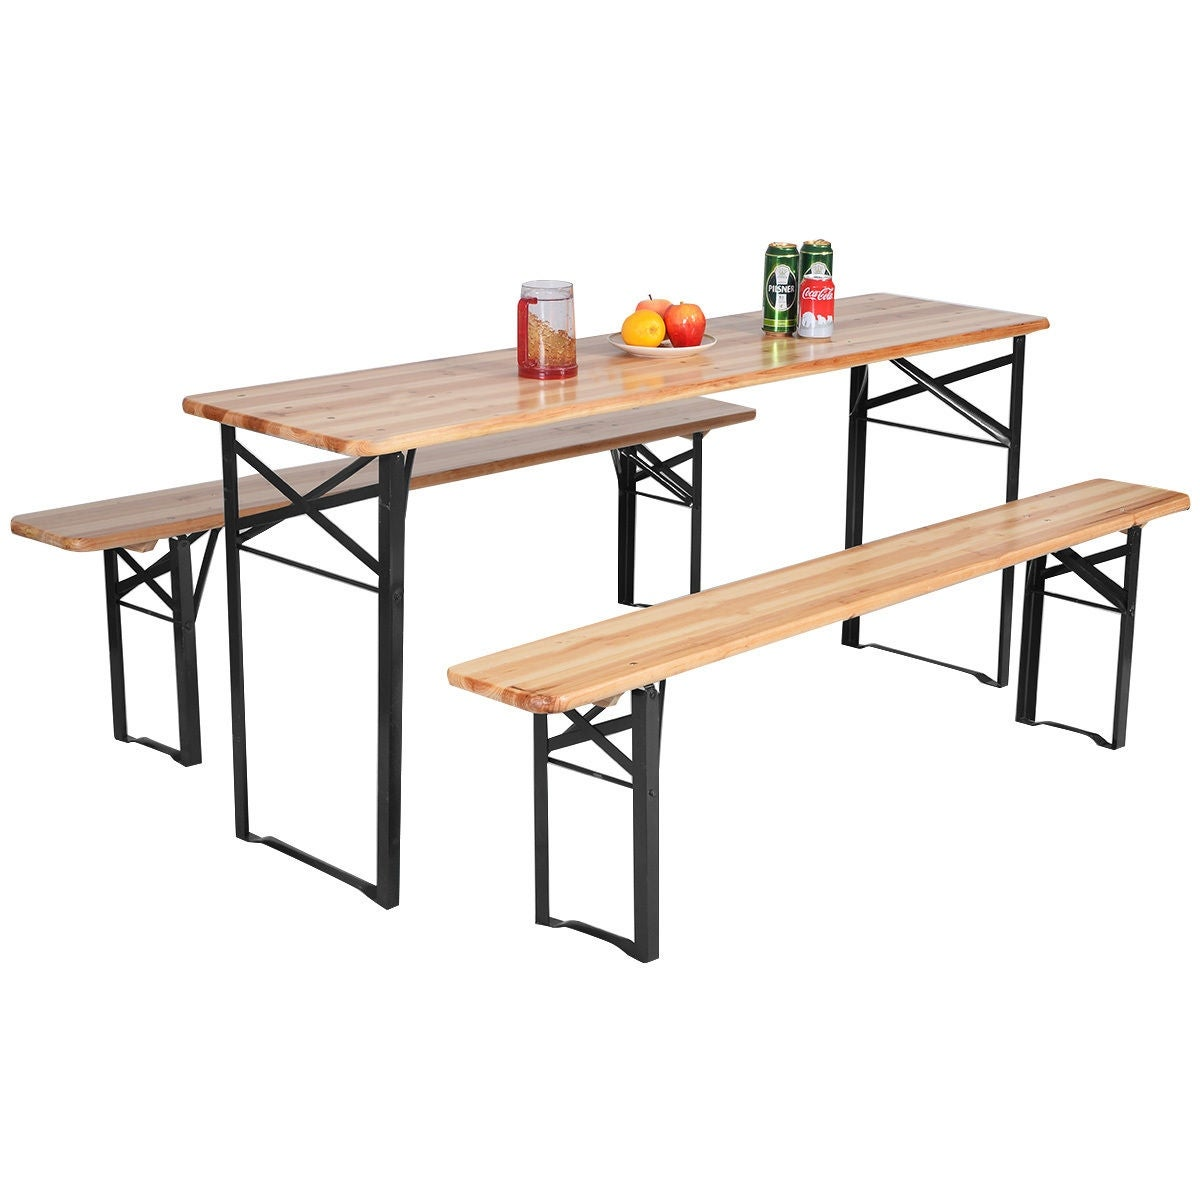 Costway 3 Pcs Beer Table Bench Set Folding Wooden Top Picnic Patio Garden